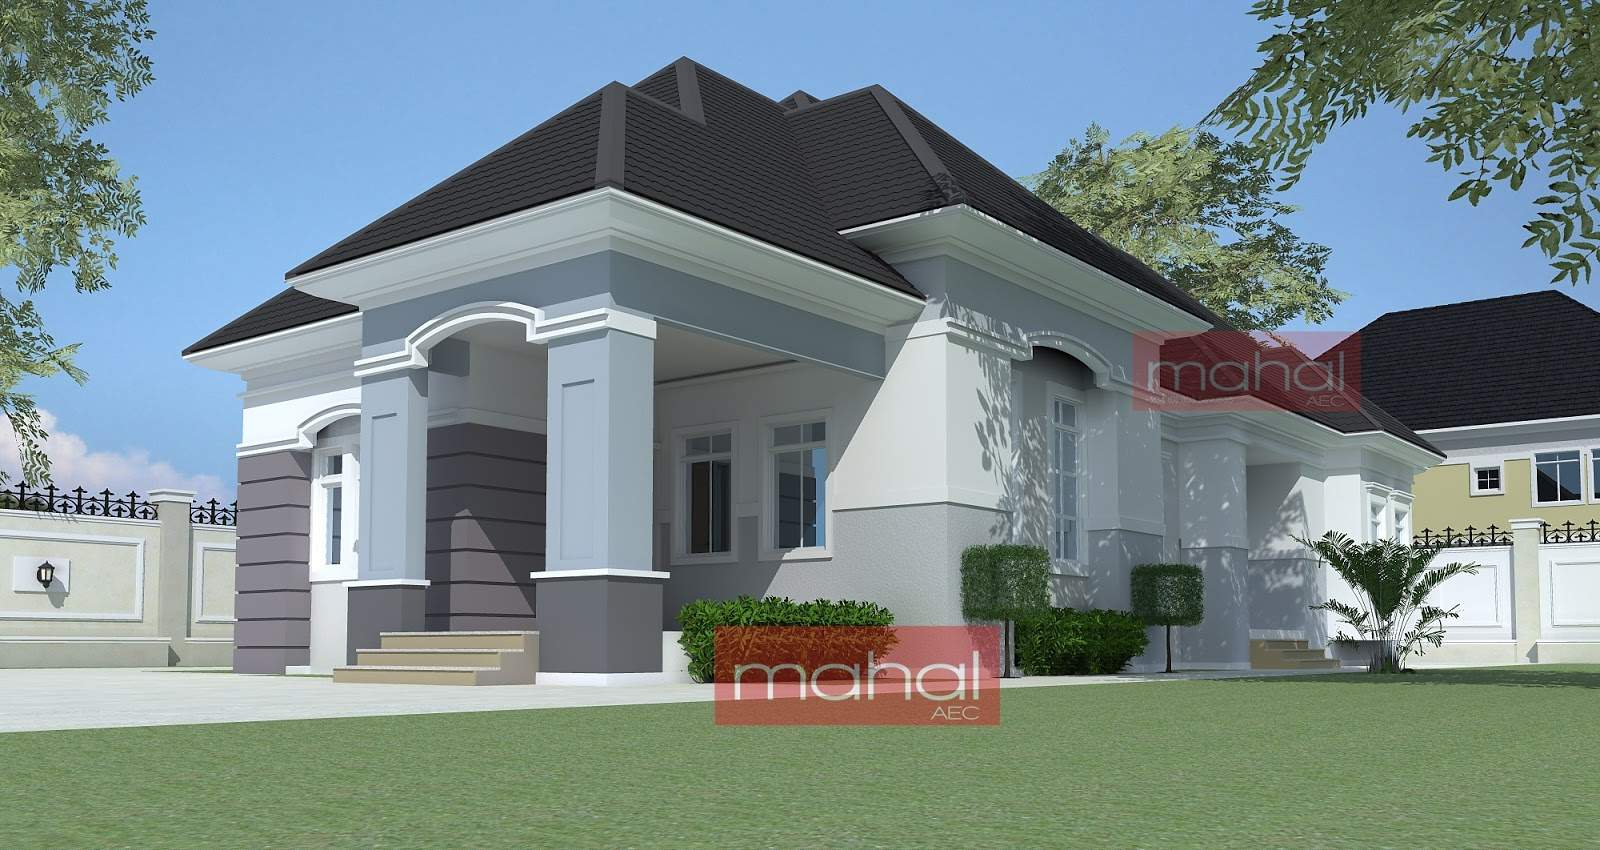 Nigerian Residential Architecture Peter House Bedroom Bungalow